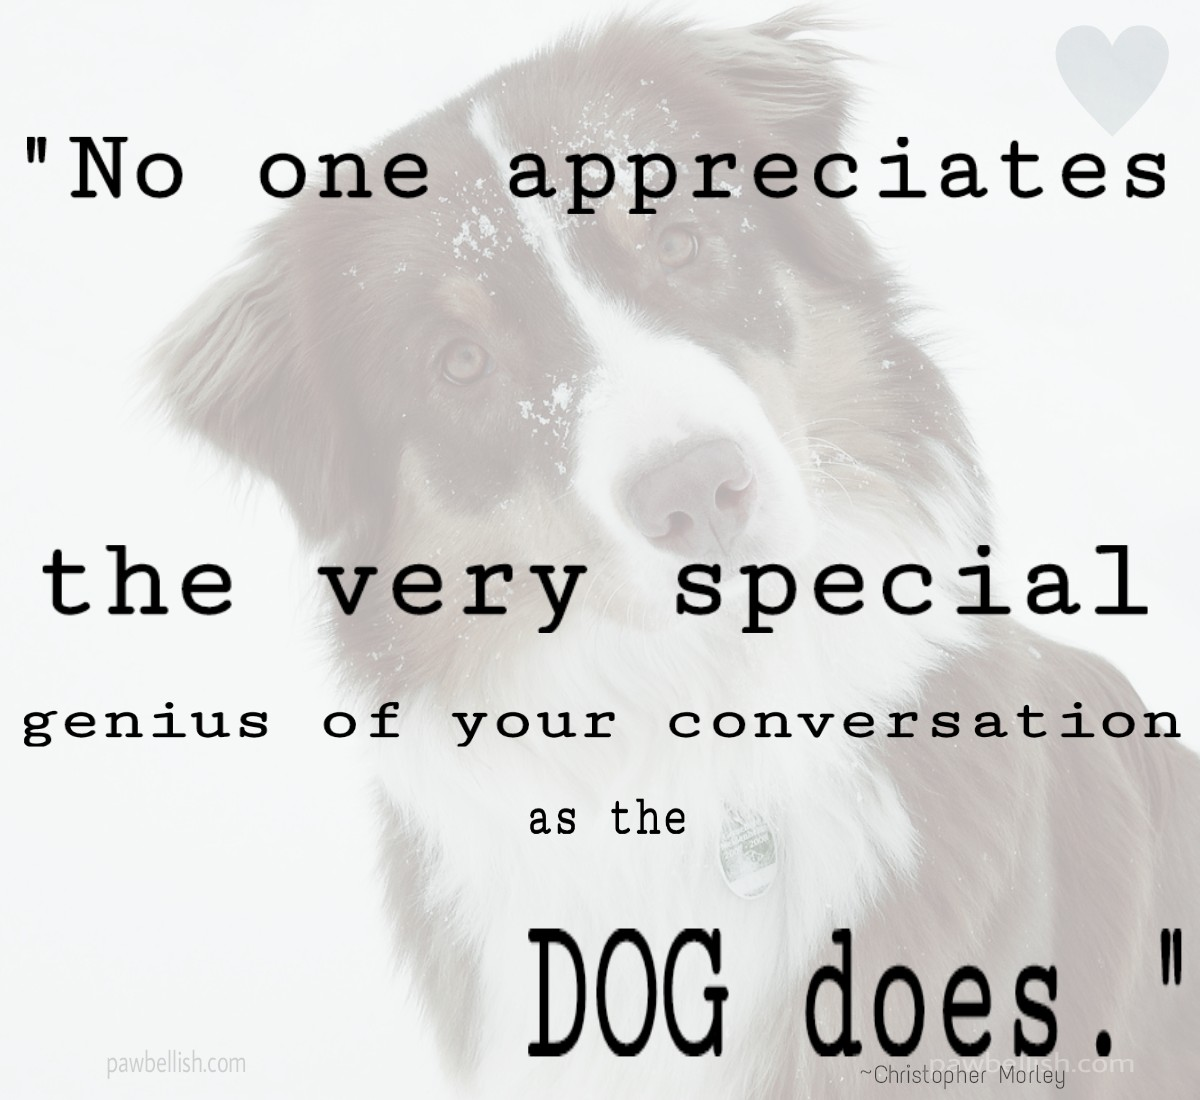 Quote about dogs appreciating your conversation